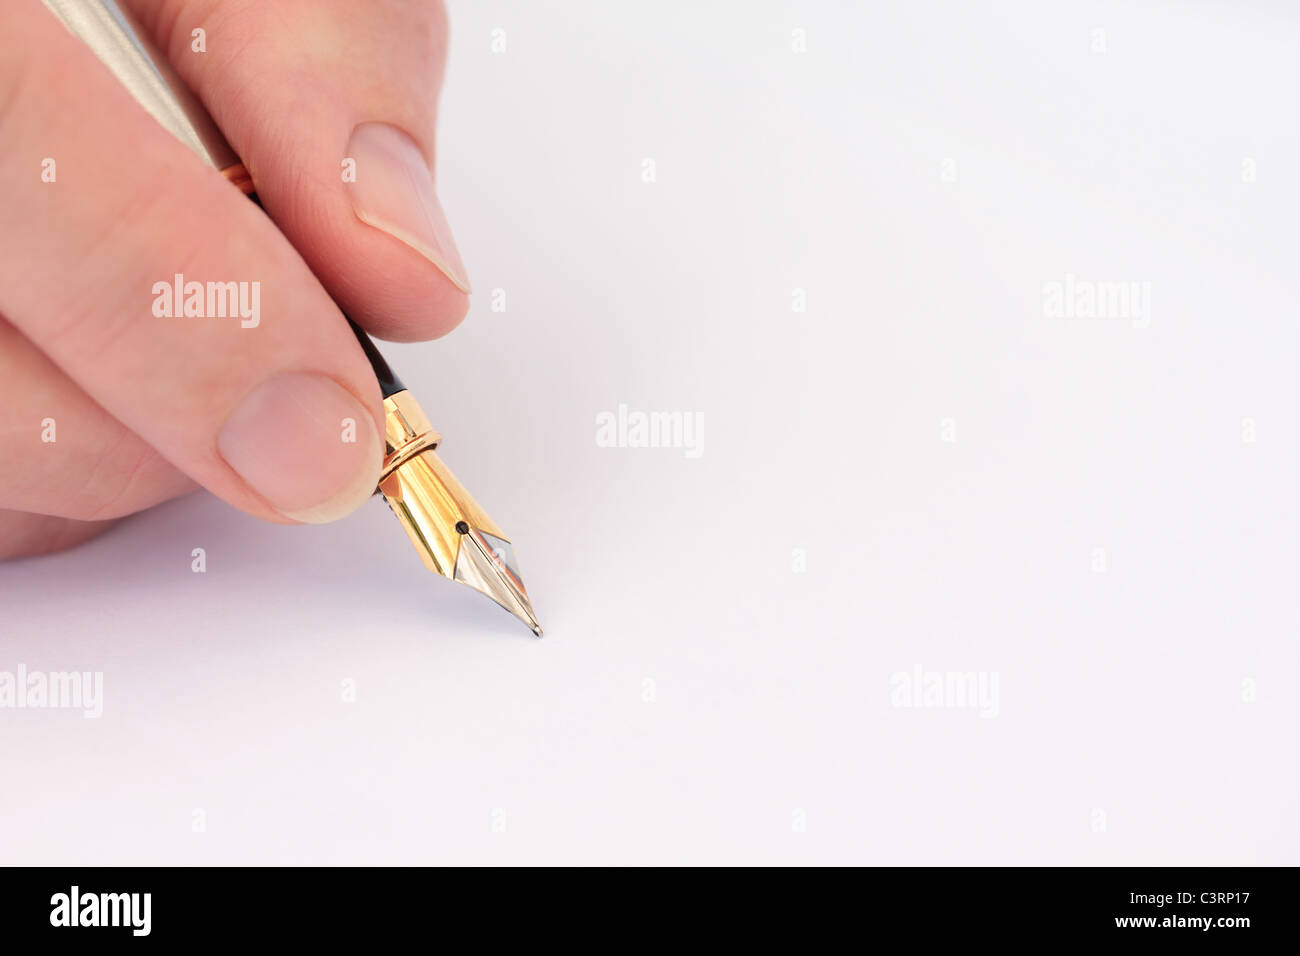 Hand with Fountain Pen on Blank Paper Closeup - Stock Image